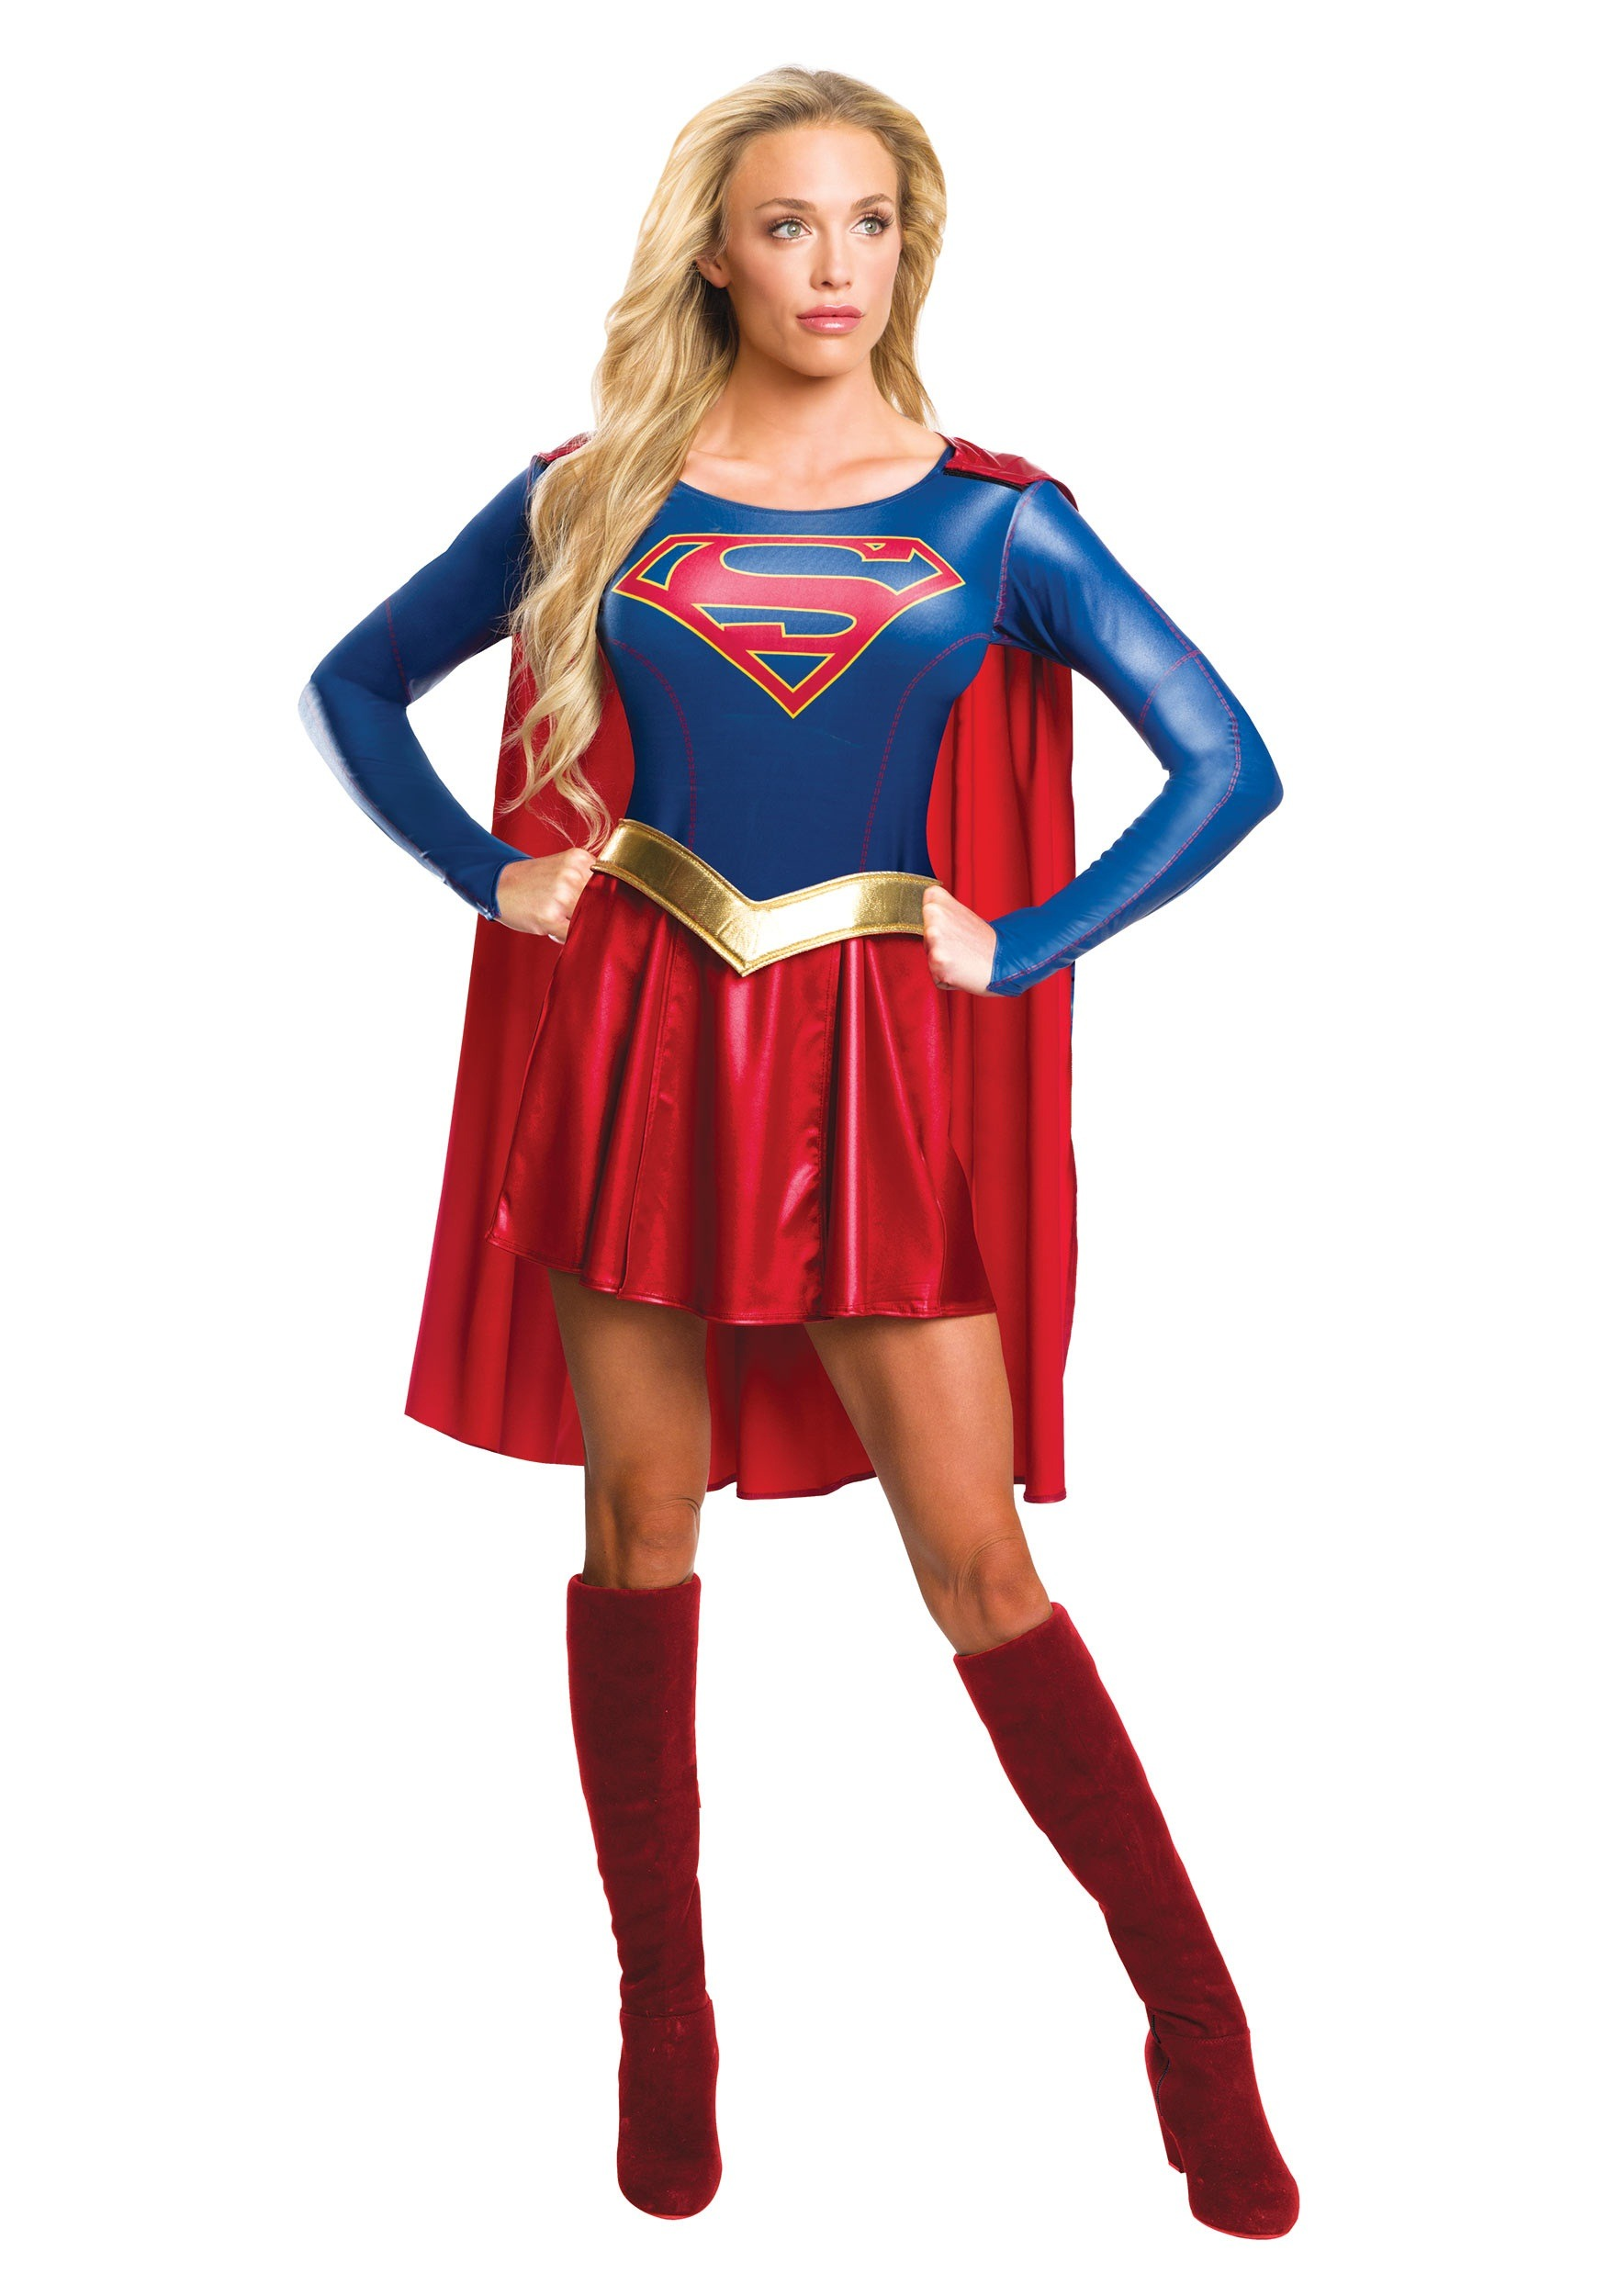 Womenu0027s Supergirl TV Costume  sc 1 st  Halloween Costumes & Superhero Costumes for Women